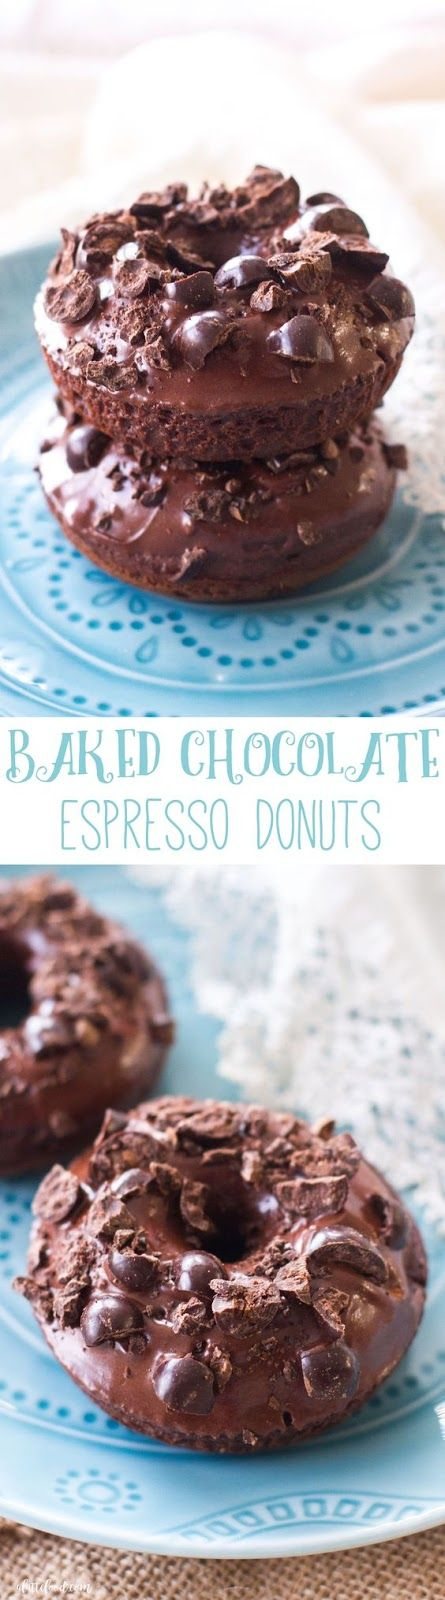 Baked Chocolate Espresso Donuts   Cake And Food Recipe